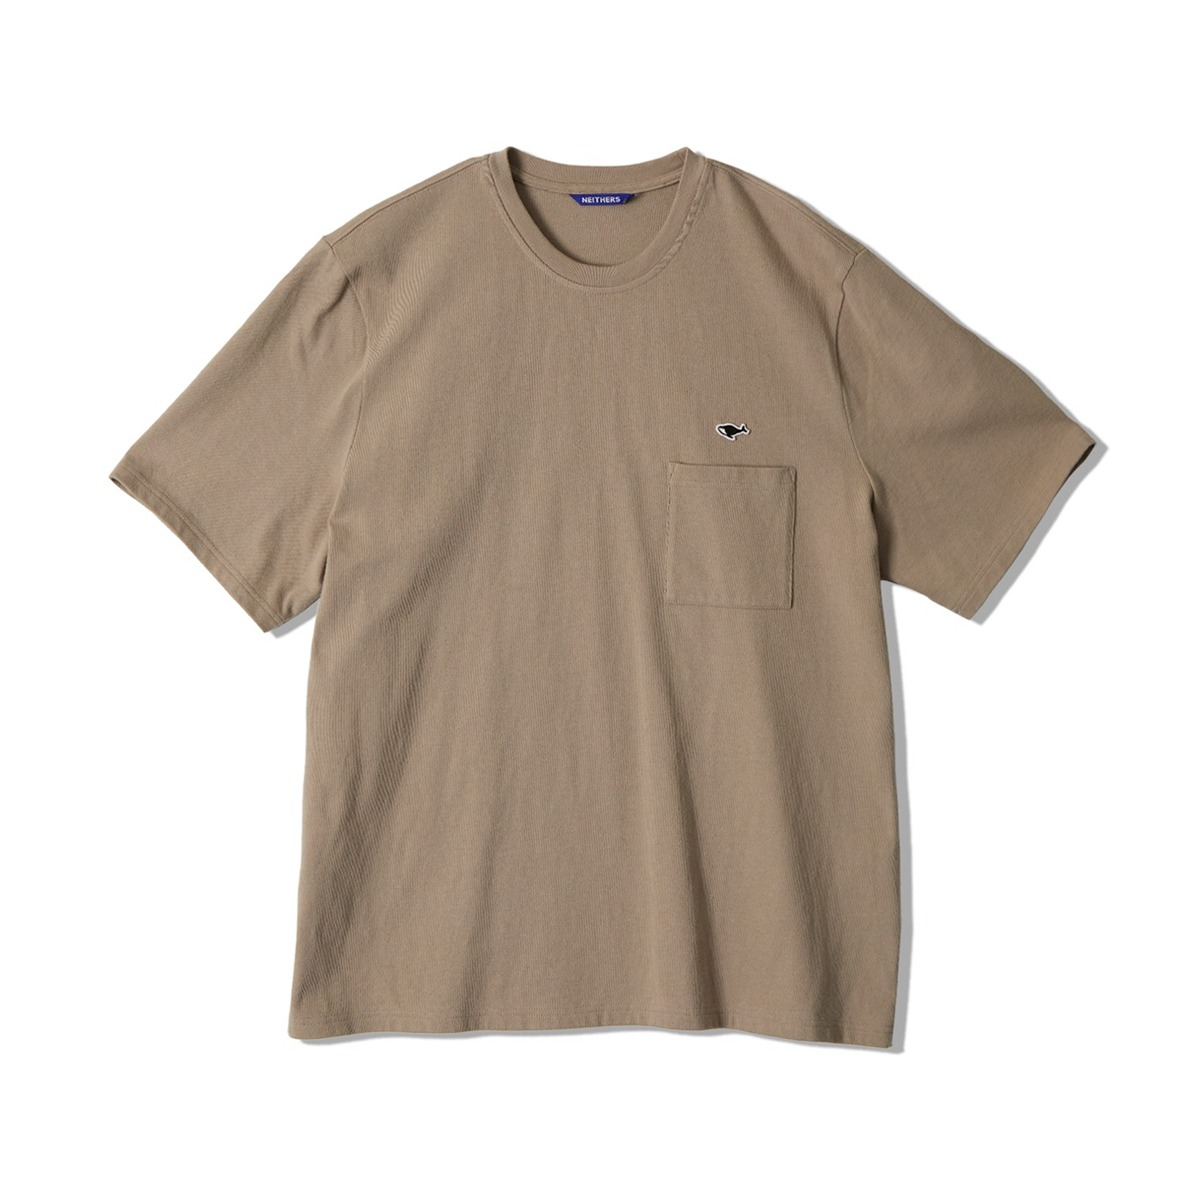 [NEITHERS] 1-POCKET T-SHIRT 'BEIGE'